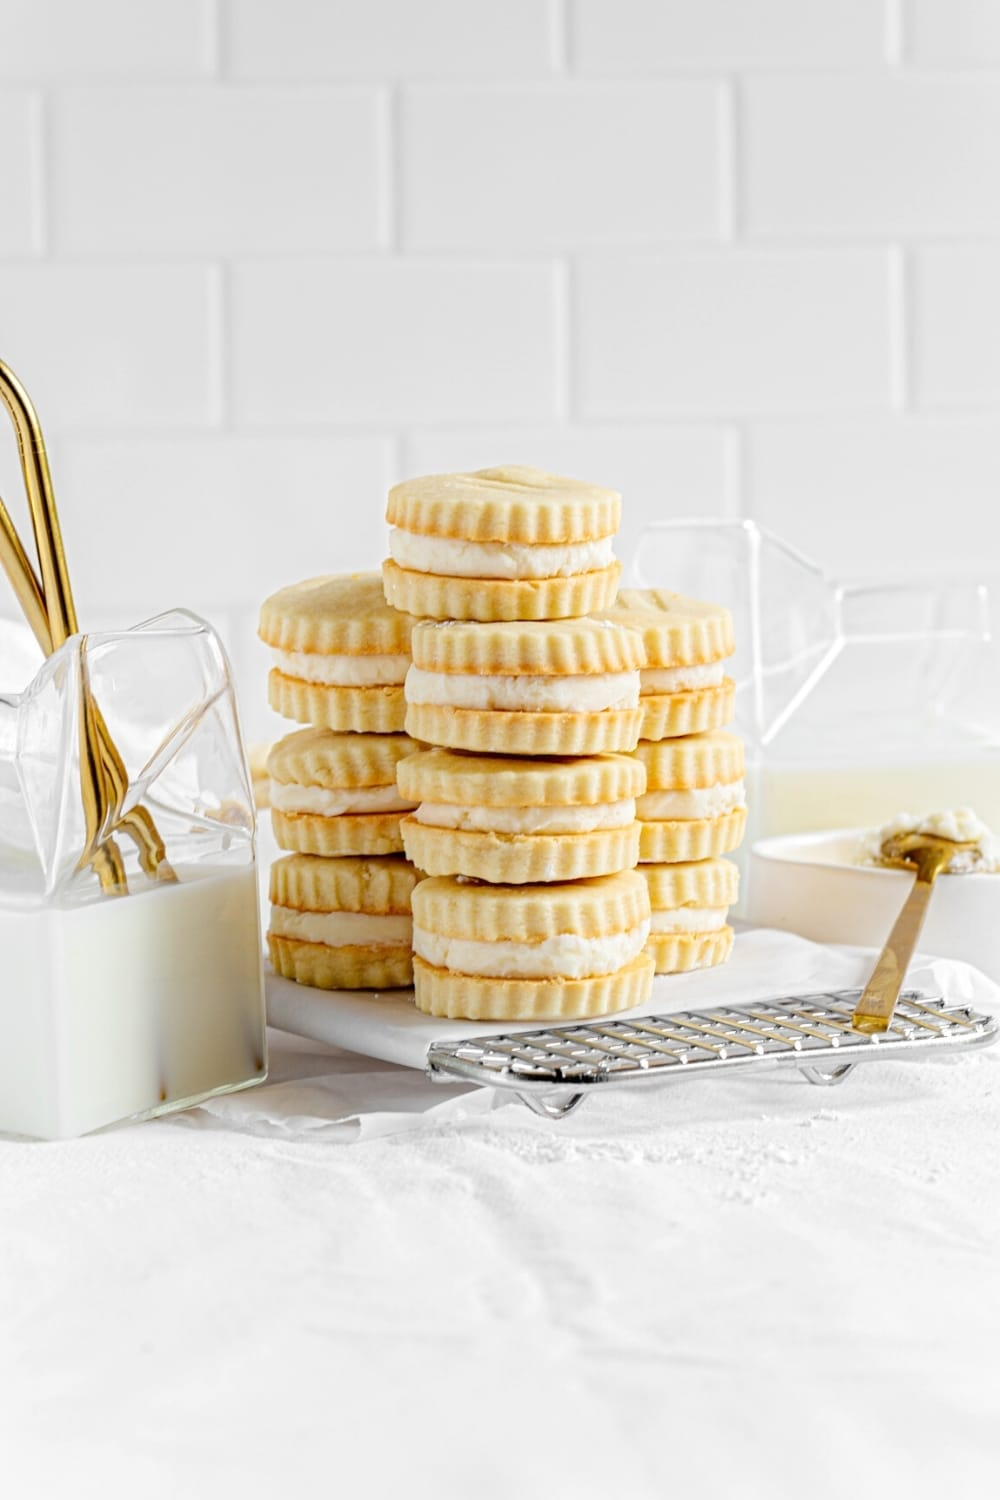 Three stacks of vanilla creme cookies on a metal cooling rack next to glass containers of milk.